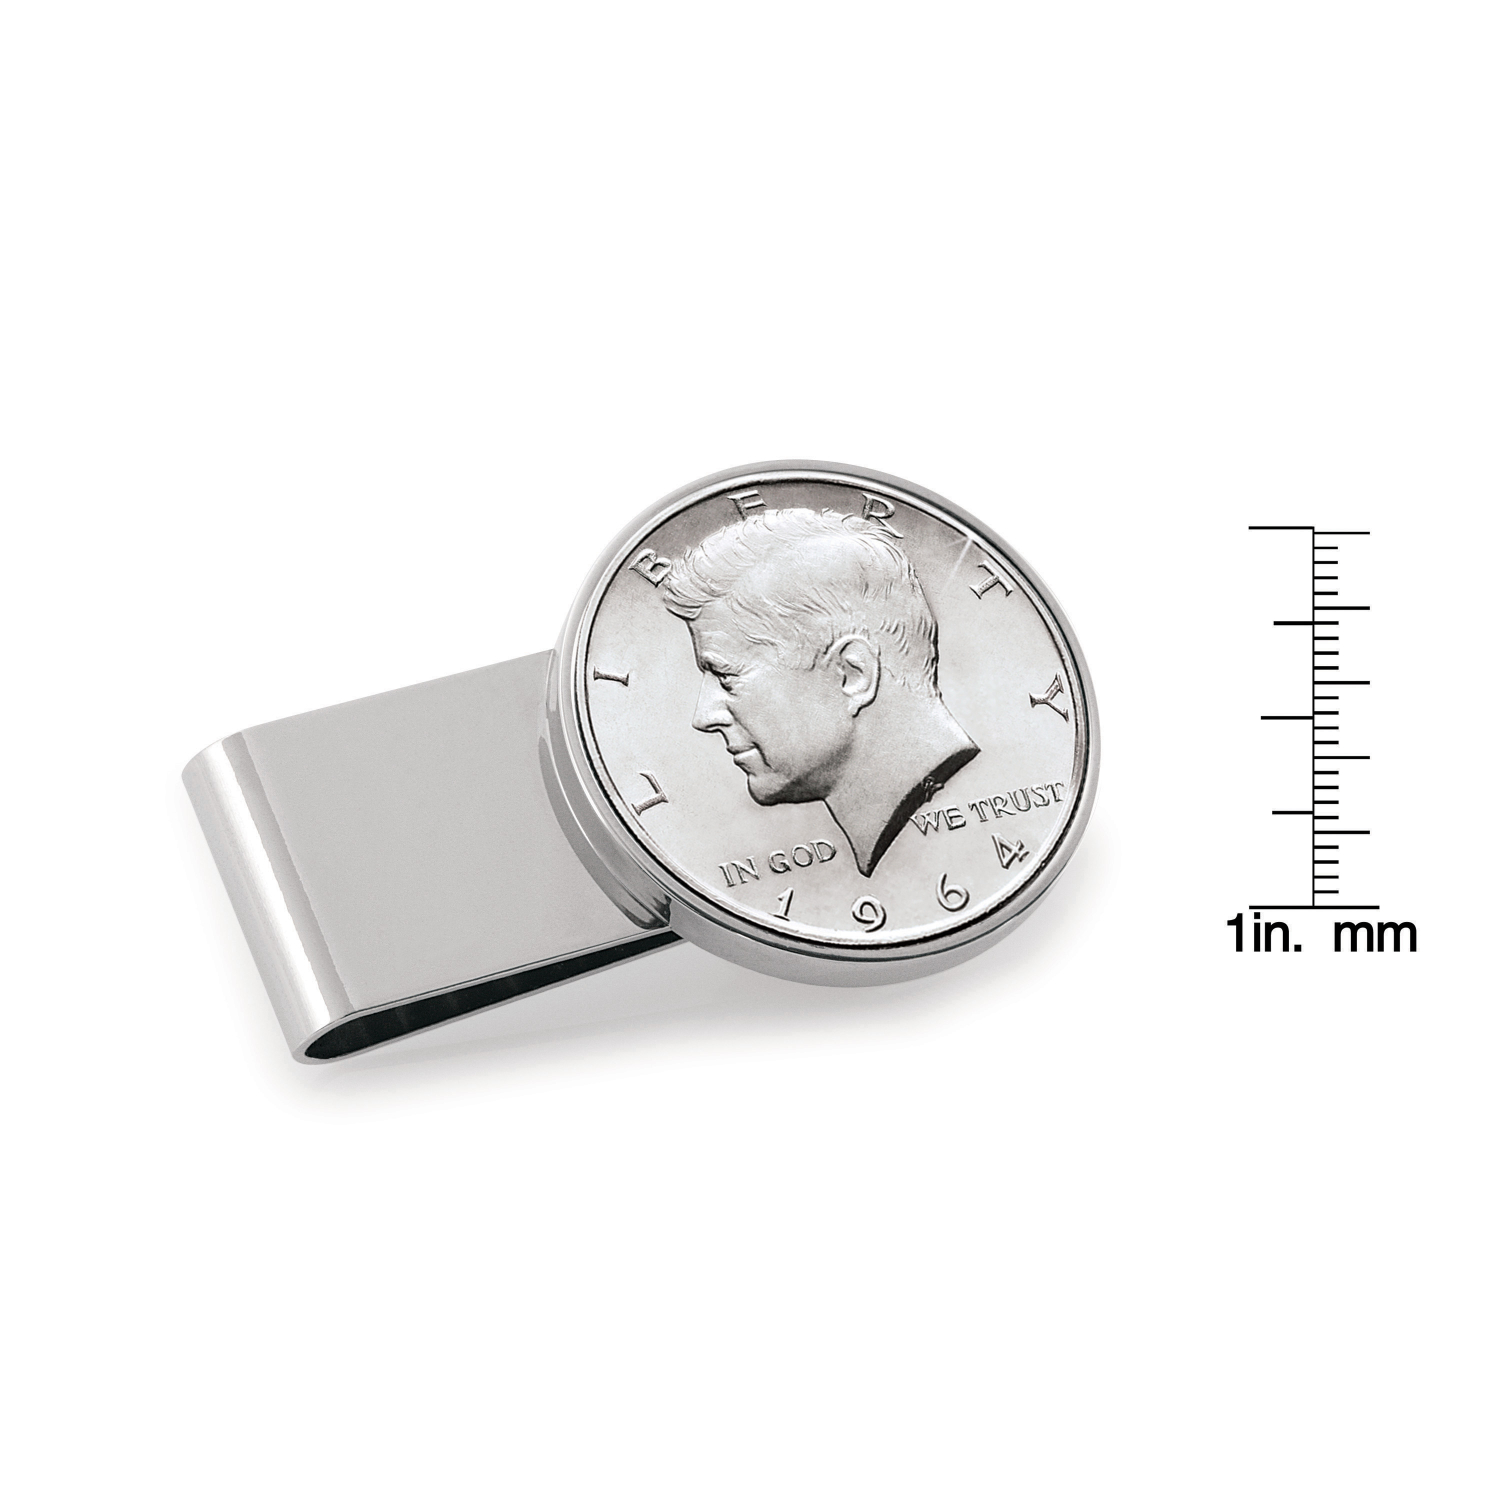 Jfk 1964 First Year Of Issue Half Dollar Stainless Steel Silvertone Coin Money Clip